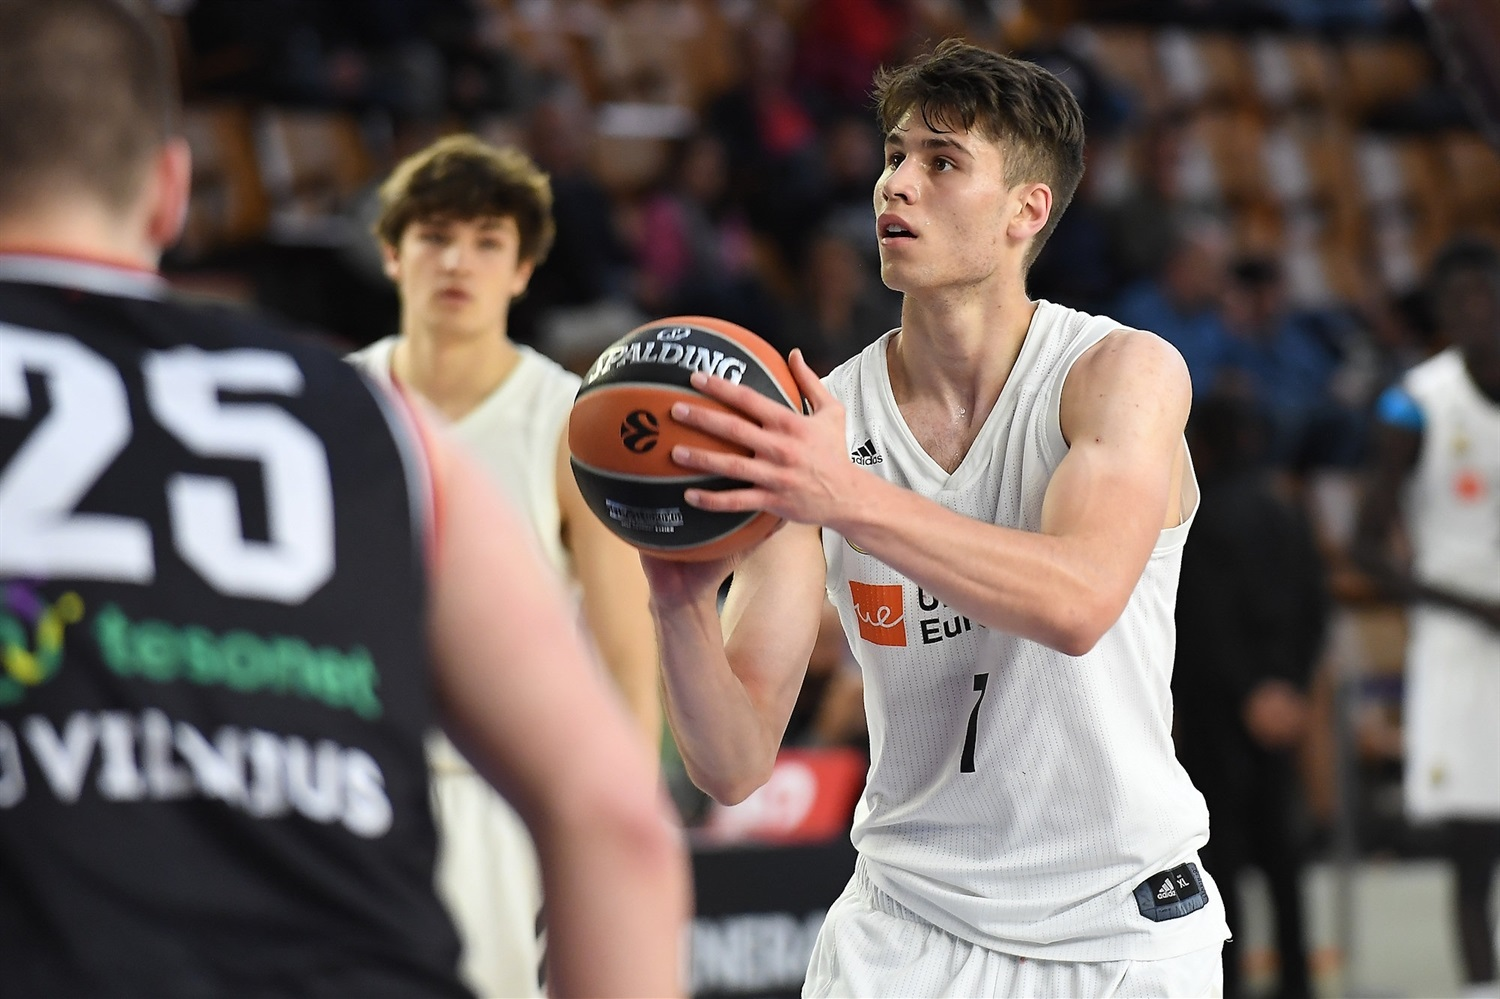 Mario Nakic - U18 Real Madrid - ANGT Final Four Vitoria-Gasteiz 2019 - JT18